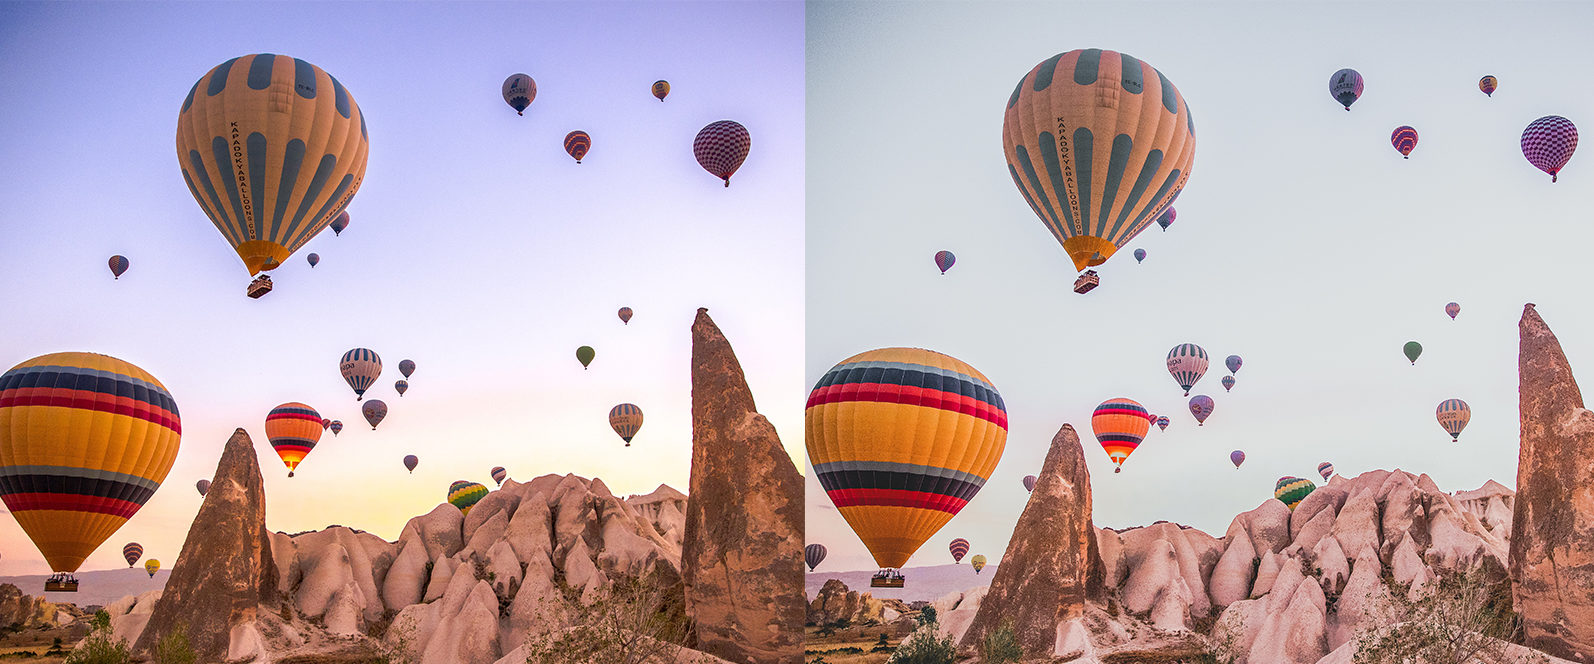 BUNDLE /// 04_Travel Collection // 64 x Desktop and Mobile Presets - 5 Hot Air Balloon1 -